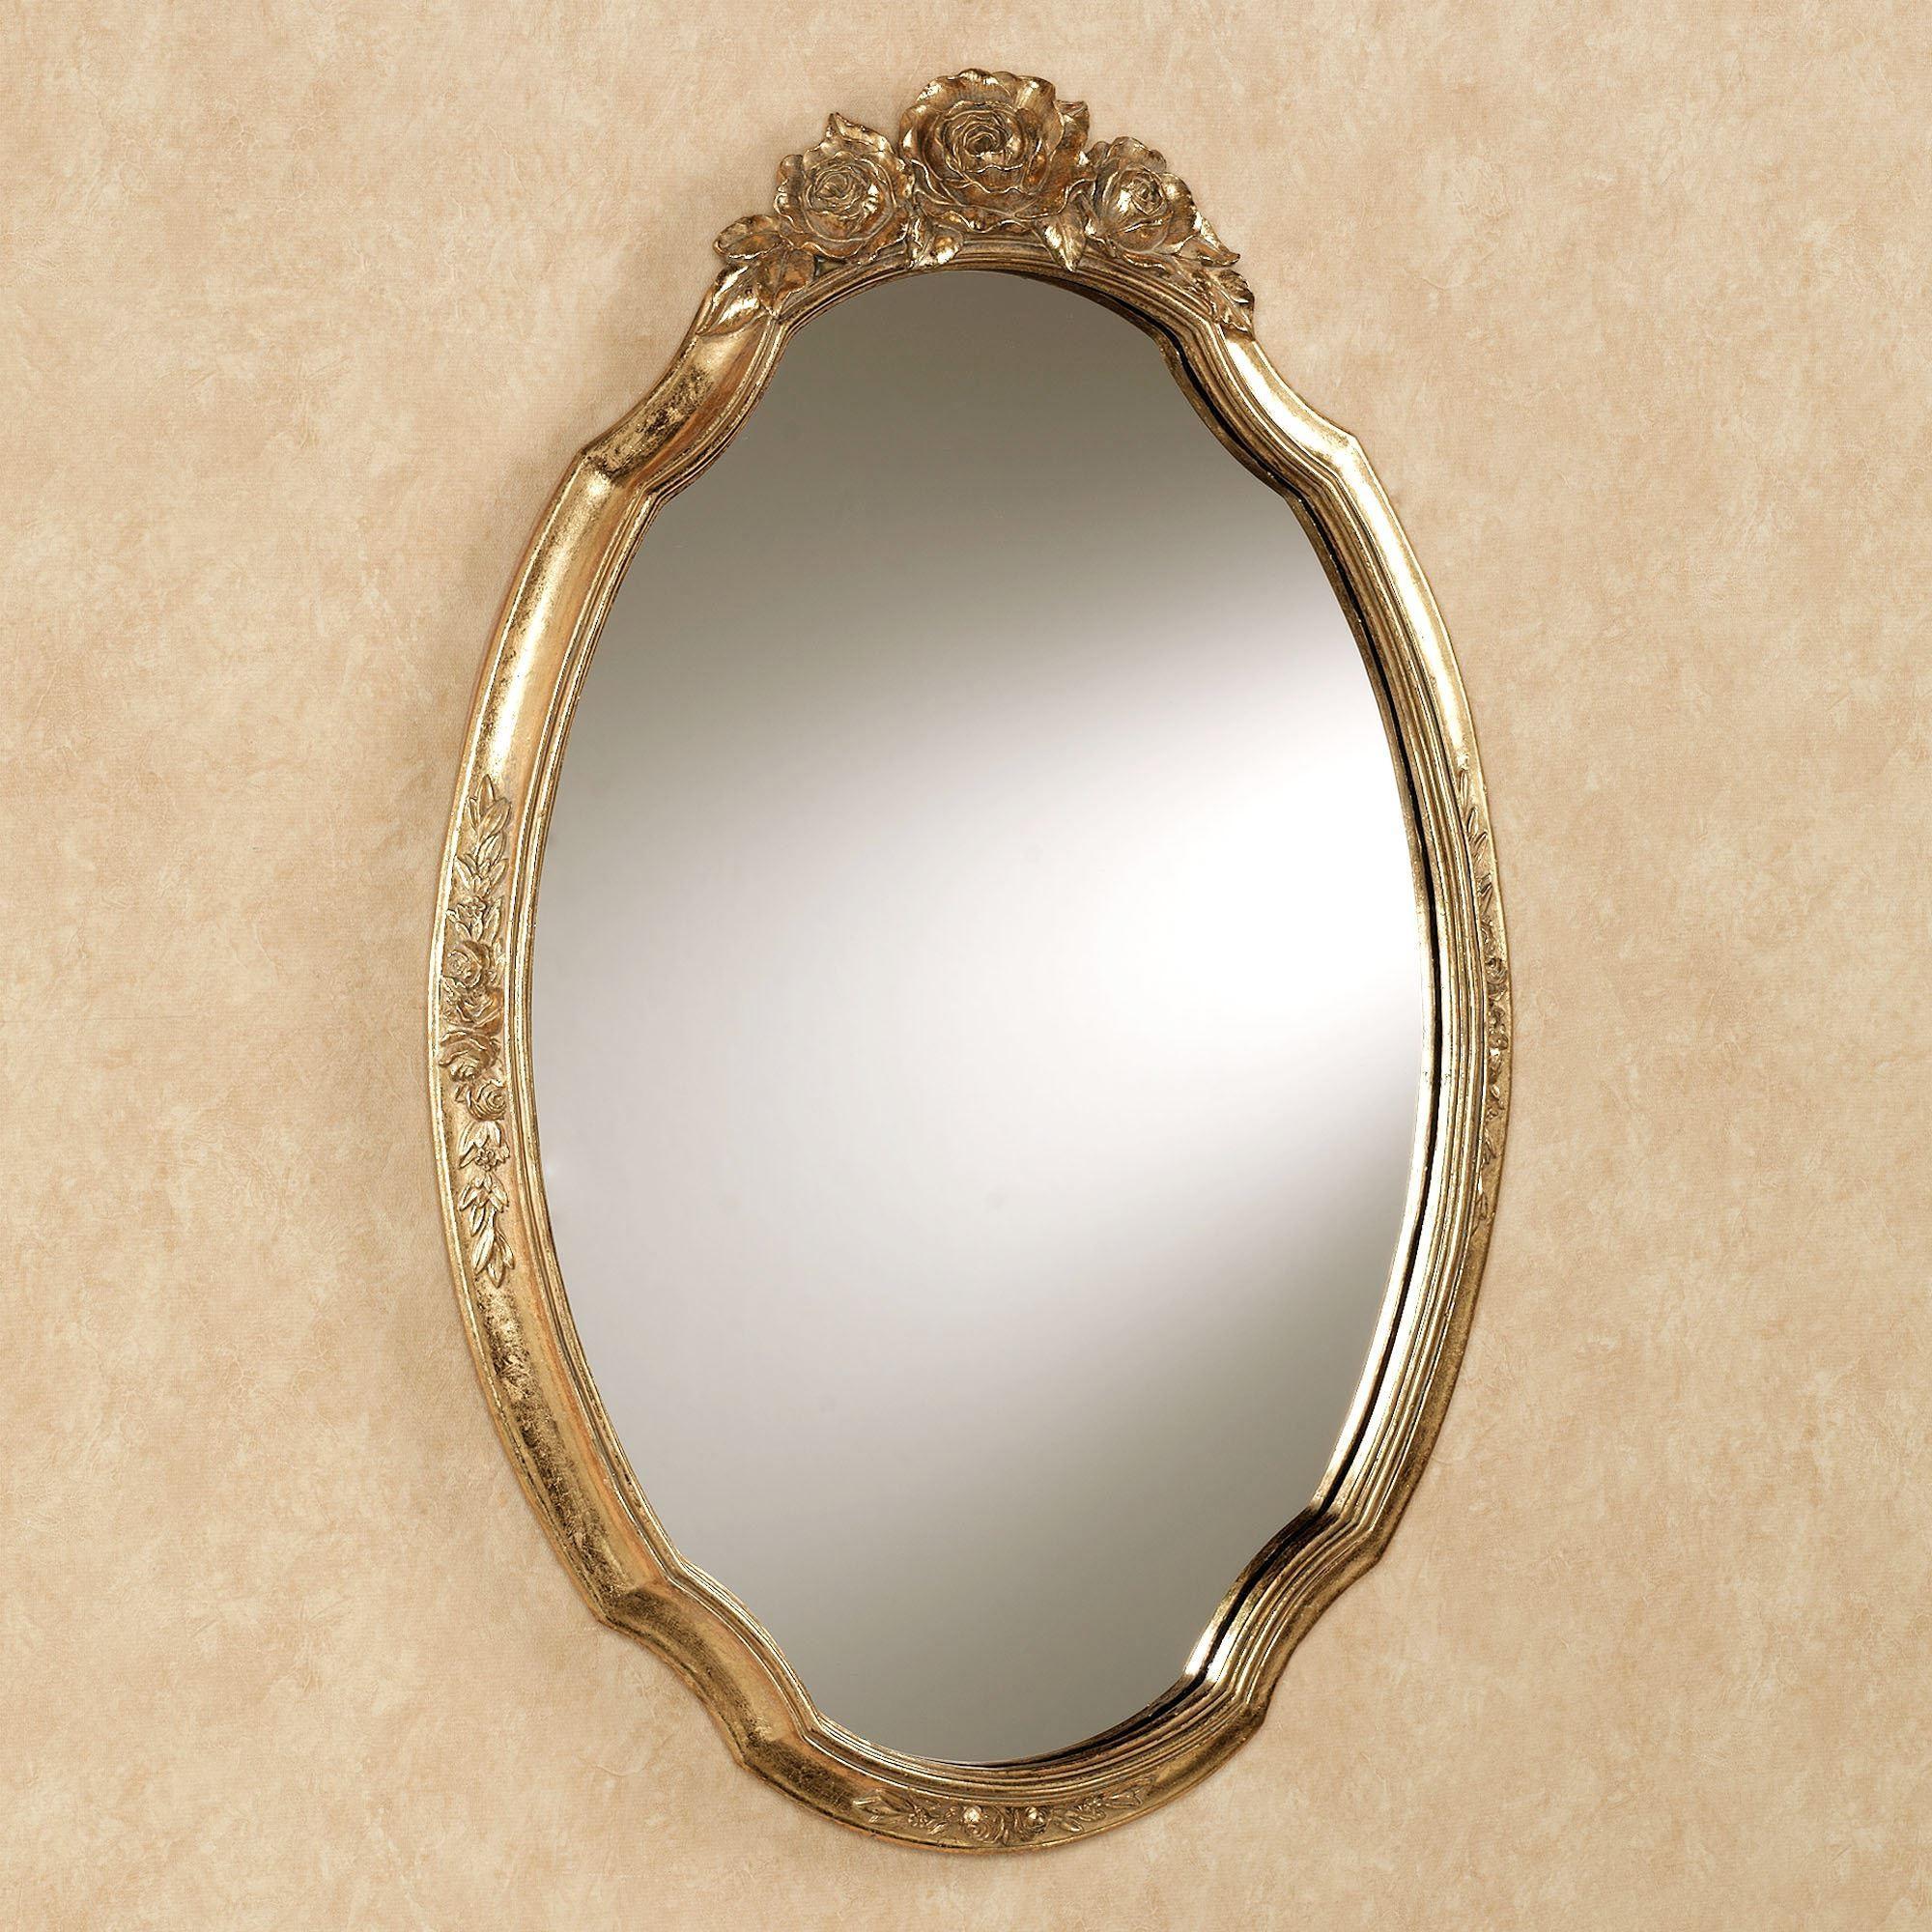 Jorah Rose Oval Wall Mirror Intended For Gold Oval Mirrors (Photo 11 of 20)